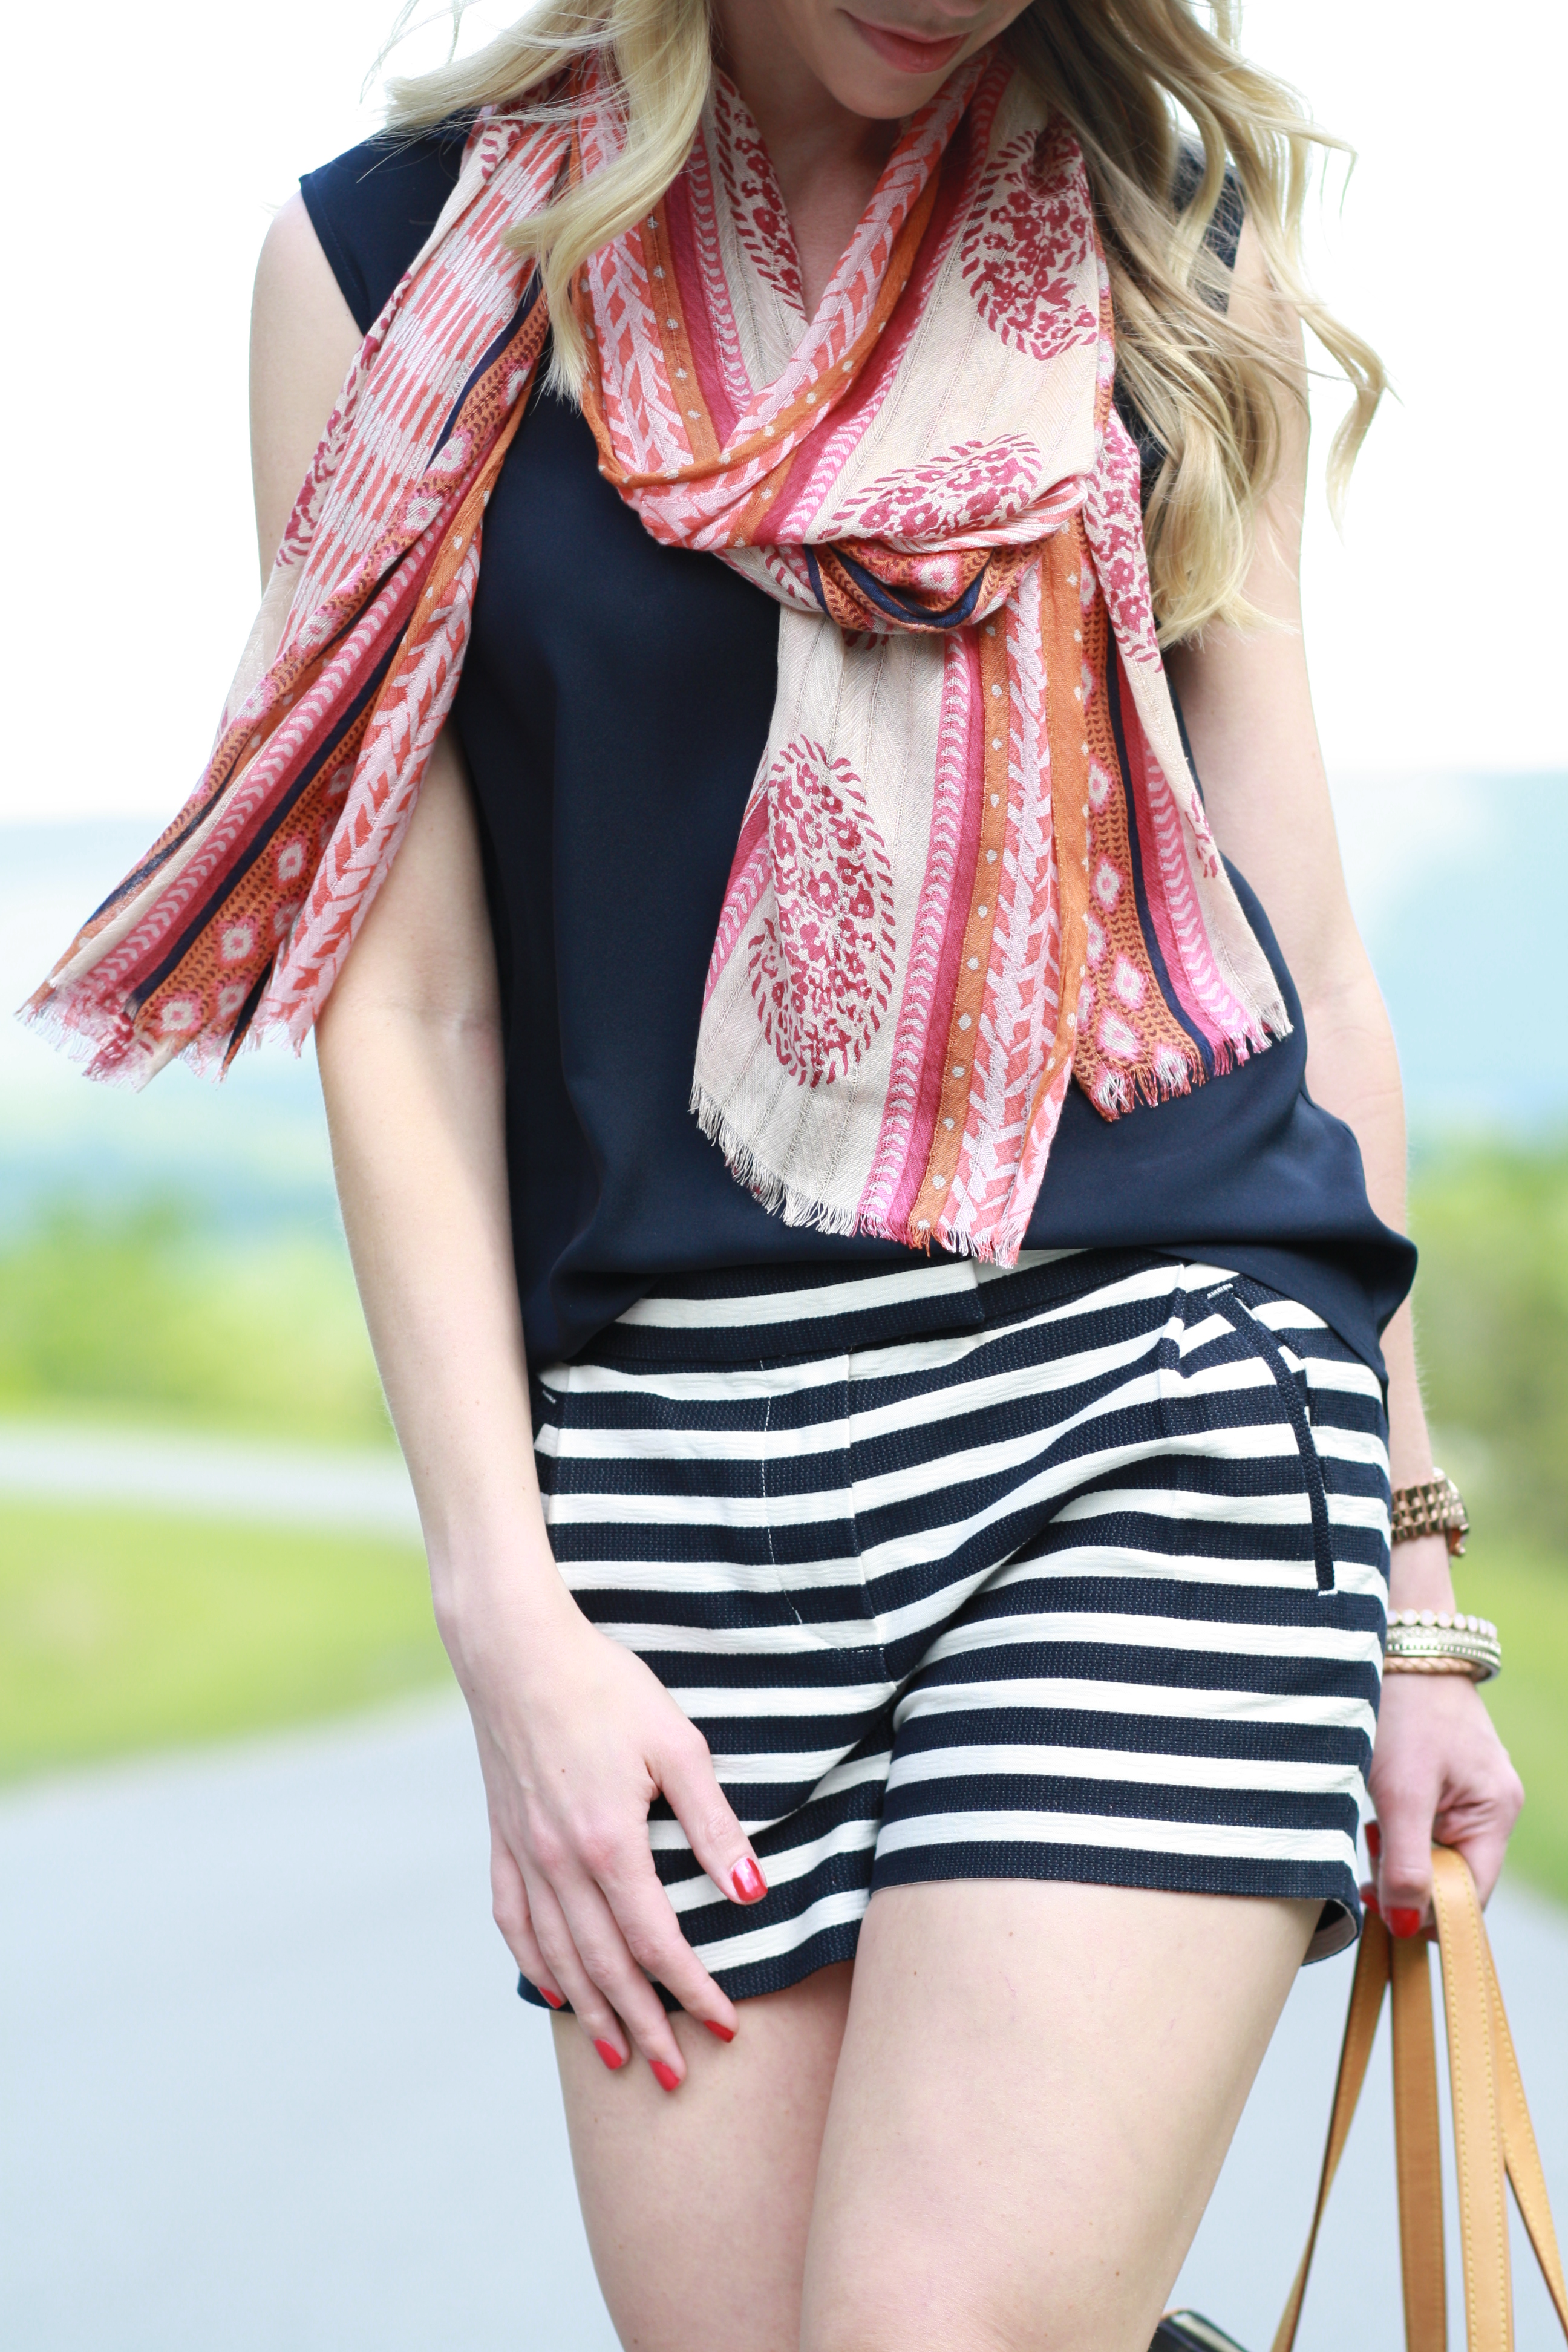 Summer Stripes Patterned Scarf Navy Shorts Amp Block